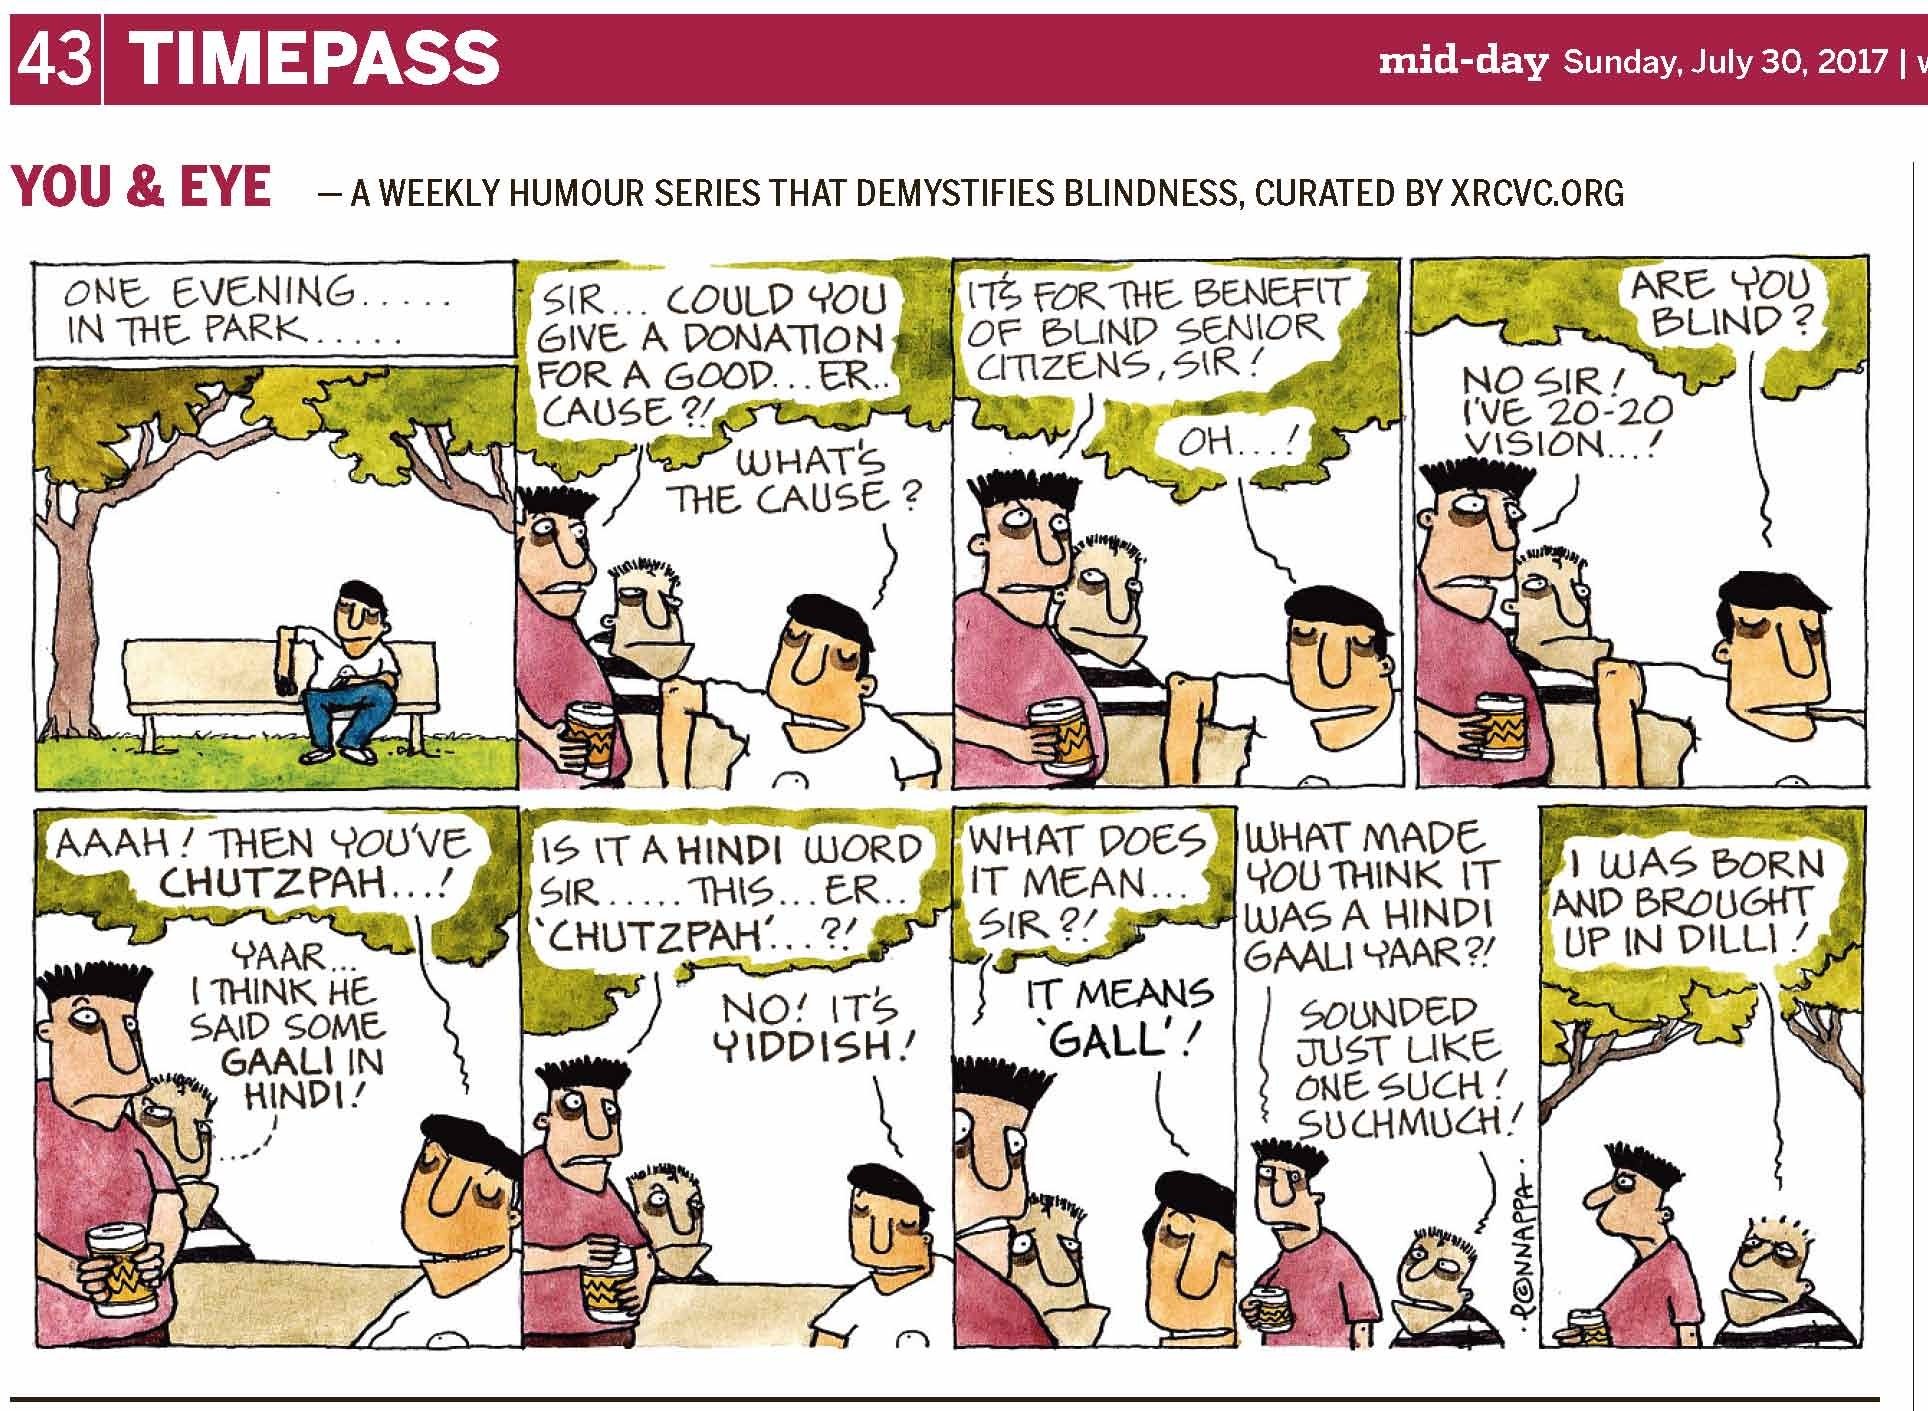 (top-left) 43 | TIMEPASS (top-right) mid-day Sunday, July 30, 2017  YOU & EYE – A WEEKLY HUMOUR SERIES THAT DEMYSTIFIES BLINDNESS, CURATED BY XRCVC.ORG Image description: A cartoon strip with 9 frames… Frame 1: (BG is seated on a park bench with the elbow of his right hand resting at the top of the backrest. Trees are seen in the background.) Text: One evening… in the park… Frame 2: (A close-up of two boys seen standing on BG's right facing him. The shorter one, with short hair, seems to be behind the bench, while the taller boy with longer spiked hair pointing upwards, is seen in front of the bench, holding a can in his right hand towards BG. Greenery is seen above them.) Tall boy: Sir… Could you give a donation for a good… er… cause?! BG: What's the cause? Frame 3: (A close-up of the two boys standing on BG's right. The short boy smiles as he looks towards the tall one. Greenery is seen above them.) Tall boy: It's for the benefit of blind senior citizens, Sir! BG: Oh…! Frame 4: (A close-up of the two boys standing on BG's right. The tall boy appears surprised with eyes open wide. Greenery is seen above them.) BG: Are you blind? Tall boy: No Sir! I've 20-20 vision…! Frame 5: (A close-up of the two boys seen standing on BG's right. The short boy closes his eyes slightly while raising his right eyebrow towards the right curiously as he looks towards the tall one, whose eyes are wide open with eyebrows raised in wonder. Greenery is seen above them.) BG: aah! Then you've chutzpah…! Short boy: Yaar… I think he said some gaali in Hindi! Frame 6: (A close-up of the two boys seen standing on BG's right. The tall boy looks at BG with eyes open wide. Greenery is seen above them.) Tall boy: Is it a Hindi word Sir… this… er… 'chutzpah'…?! BG: No! It's Yiddish! Frame 7: (A close-up showing only the faces of the two boys and BG.  Greenery is seen above them.) Tall boy: What does it mean… Sir?! BG: It means 'gall'! Frame 8: (A close-up showing the two boys looking towards their right, apparently walking away.) Tall boy: What made you think it was a Hindi gaali yaar?! Short boy: